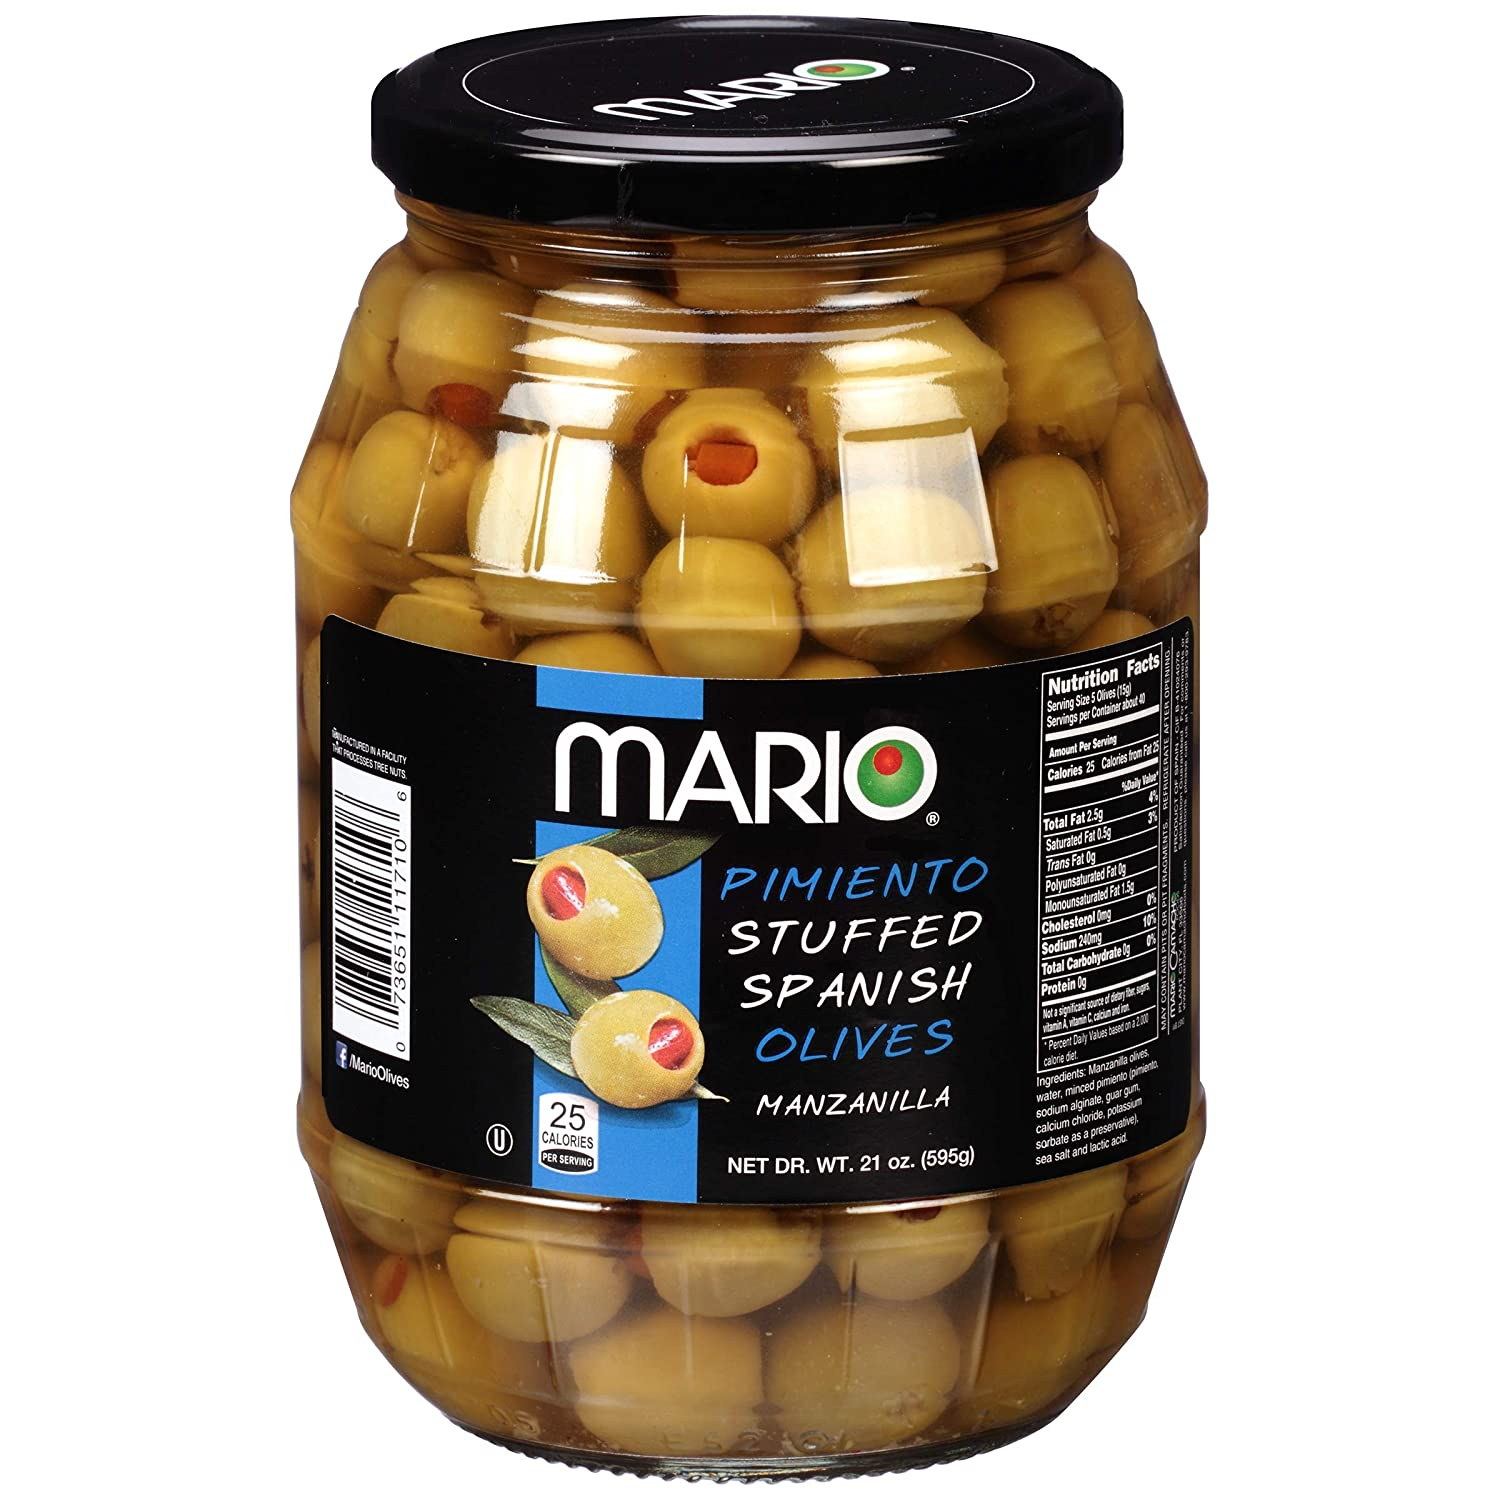 Mario We OFFer at cheap prices Pimiento Stuffed Spanish Olives Manzanilla Pack 1 - of Super intense SALE Gla